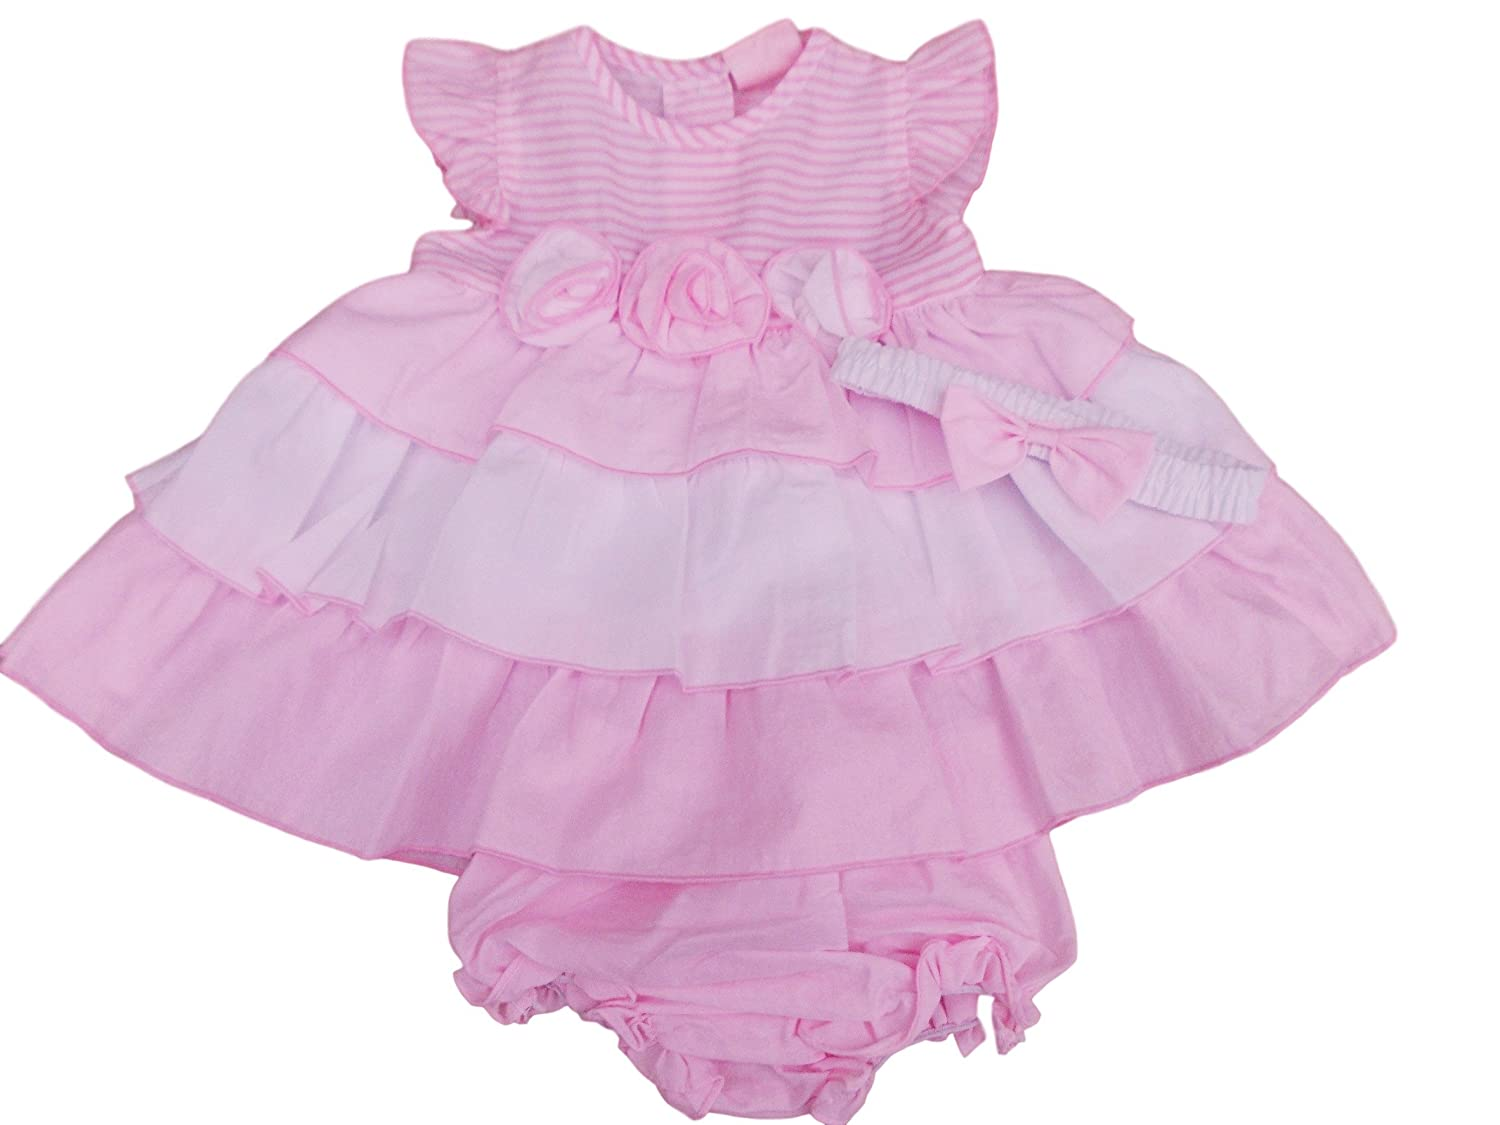 3159cce82b82 BNWT Baby Girls Summer Pink   White Frilly Dress   Hairband with Rose 6  Sizes (6-9 Months)  Amazon.co.uk  Clothing